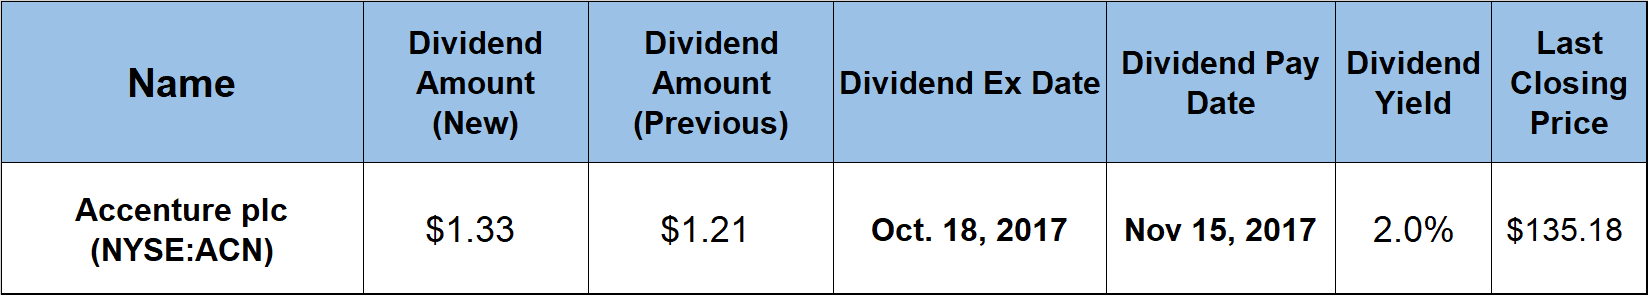 Dividend Payout